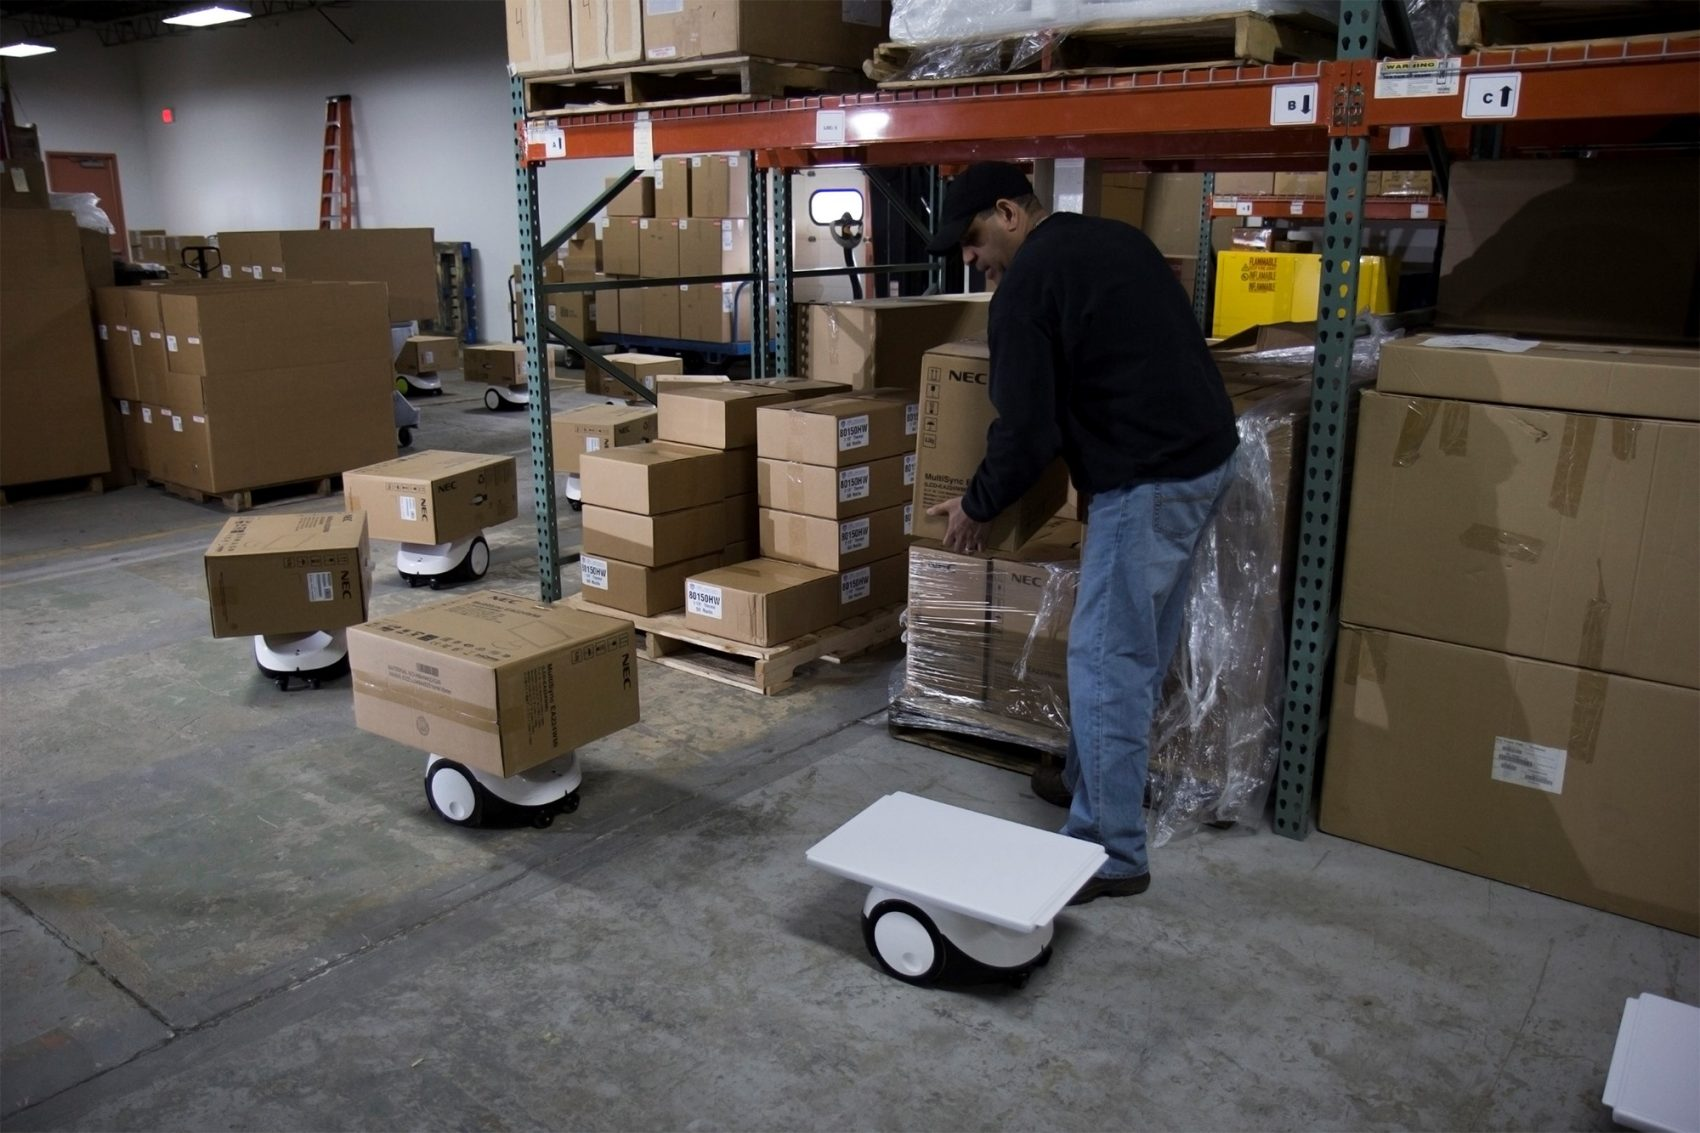 The founder of Vecna says robots are not about replacing people, it's about making warehouse workers as efficient as possible. (Courtesy of Vecna Robotics)